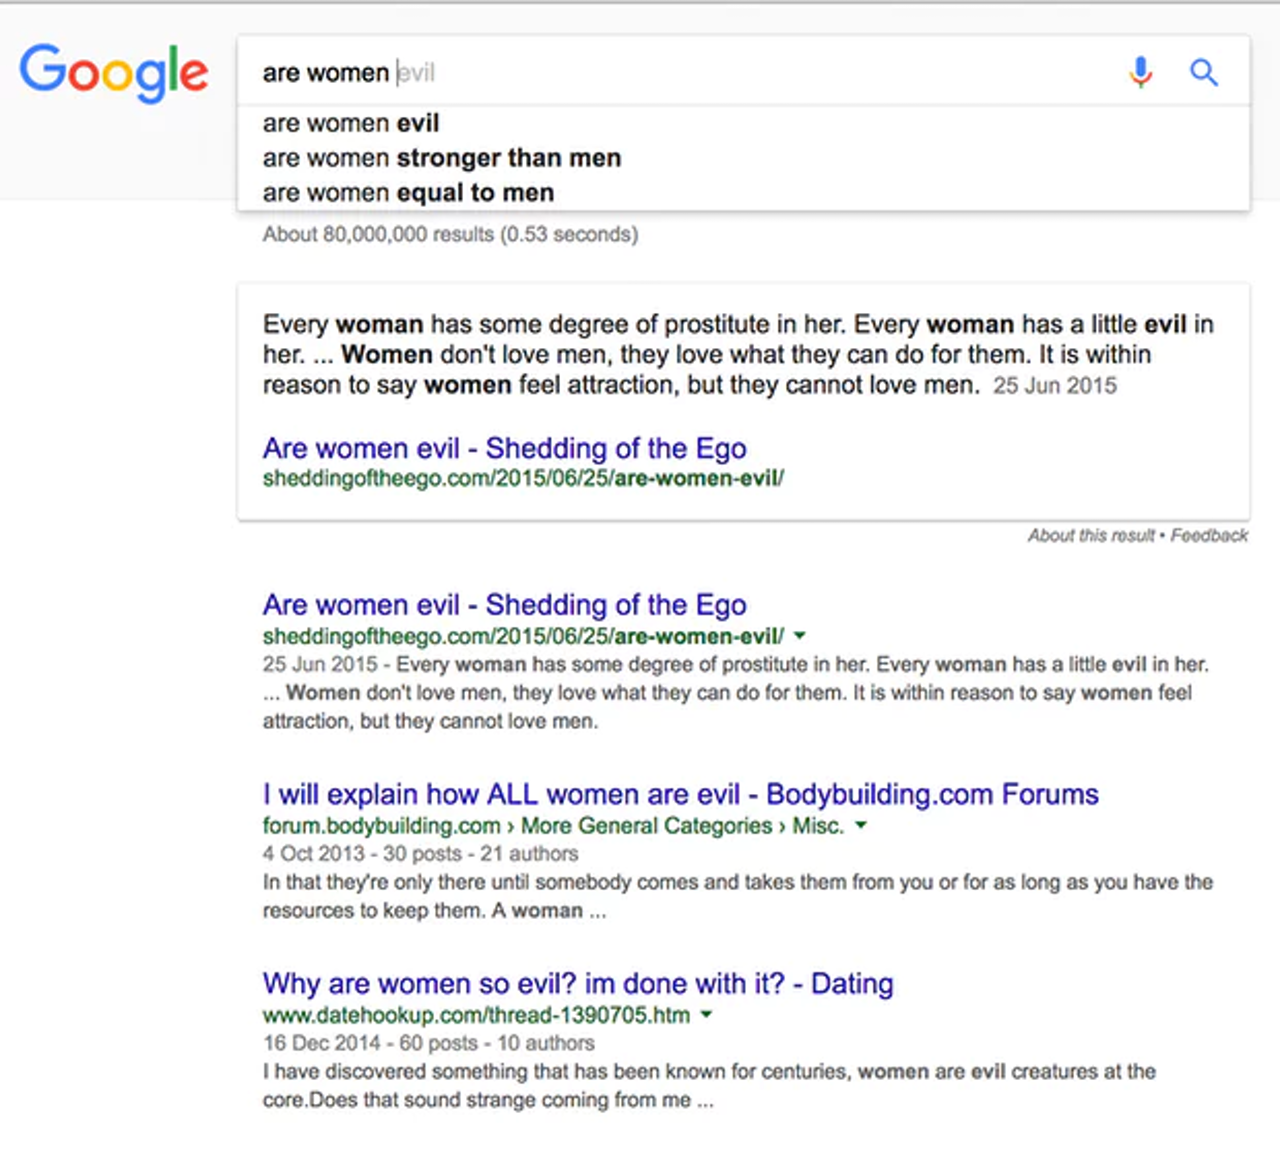 Is Google    evil? | The Outline